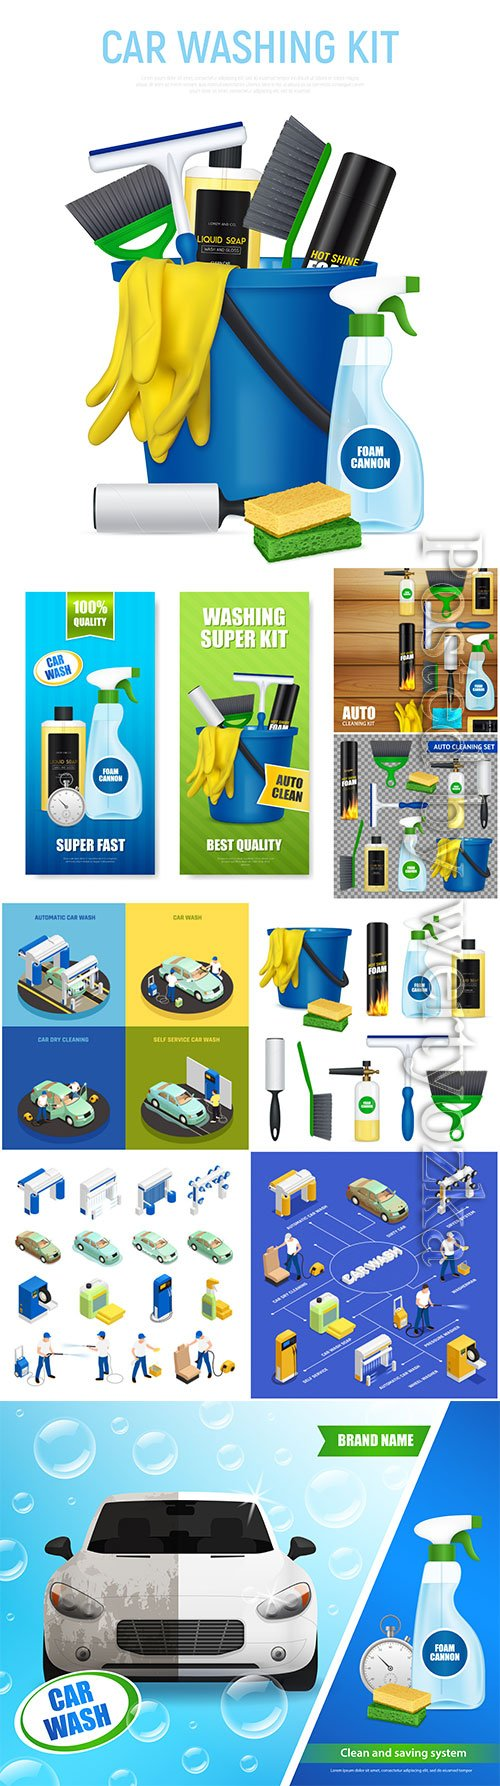 Auto car wash product vector illustration template